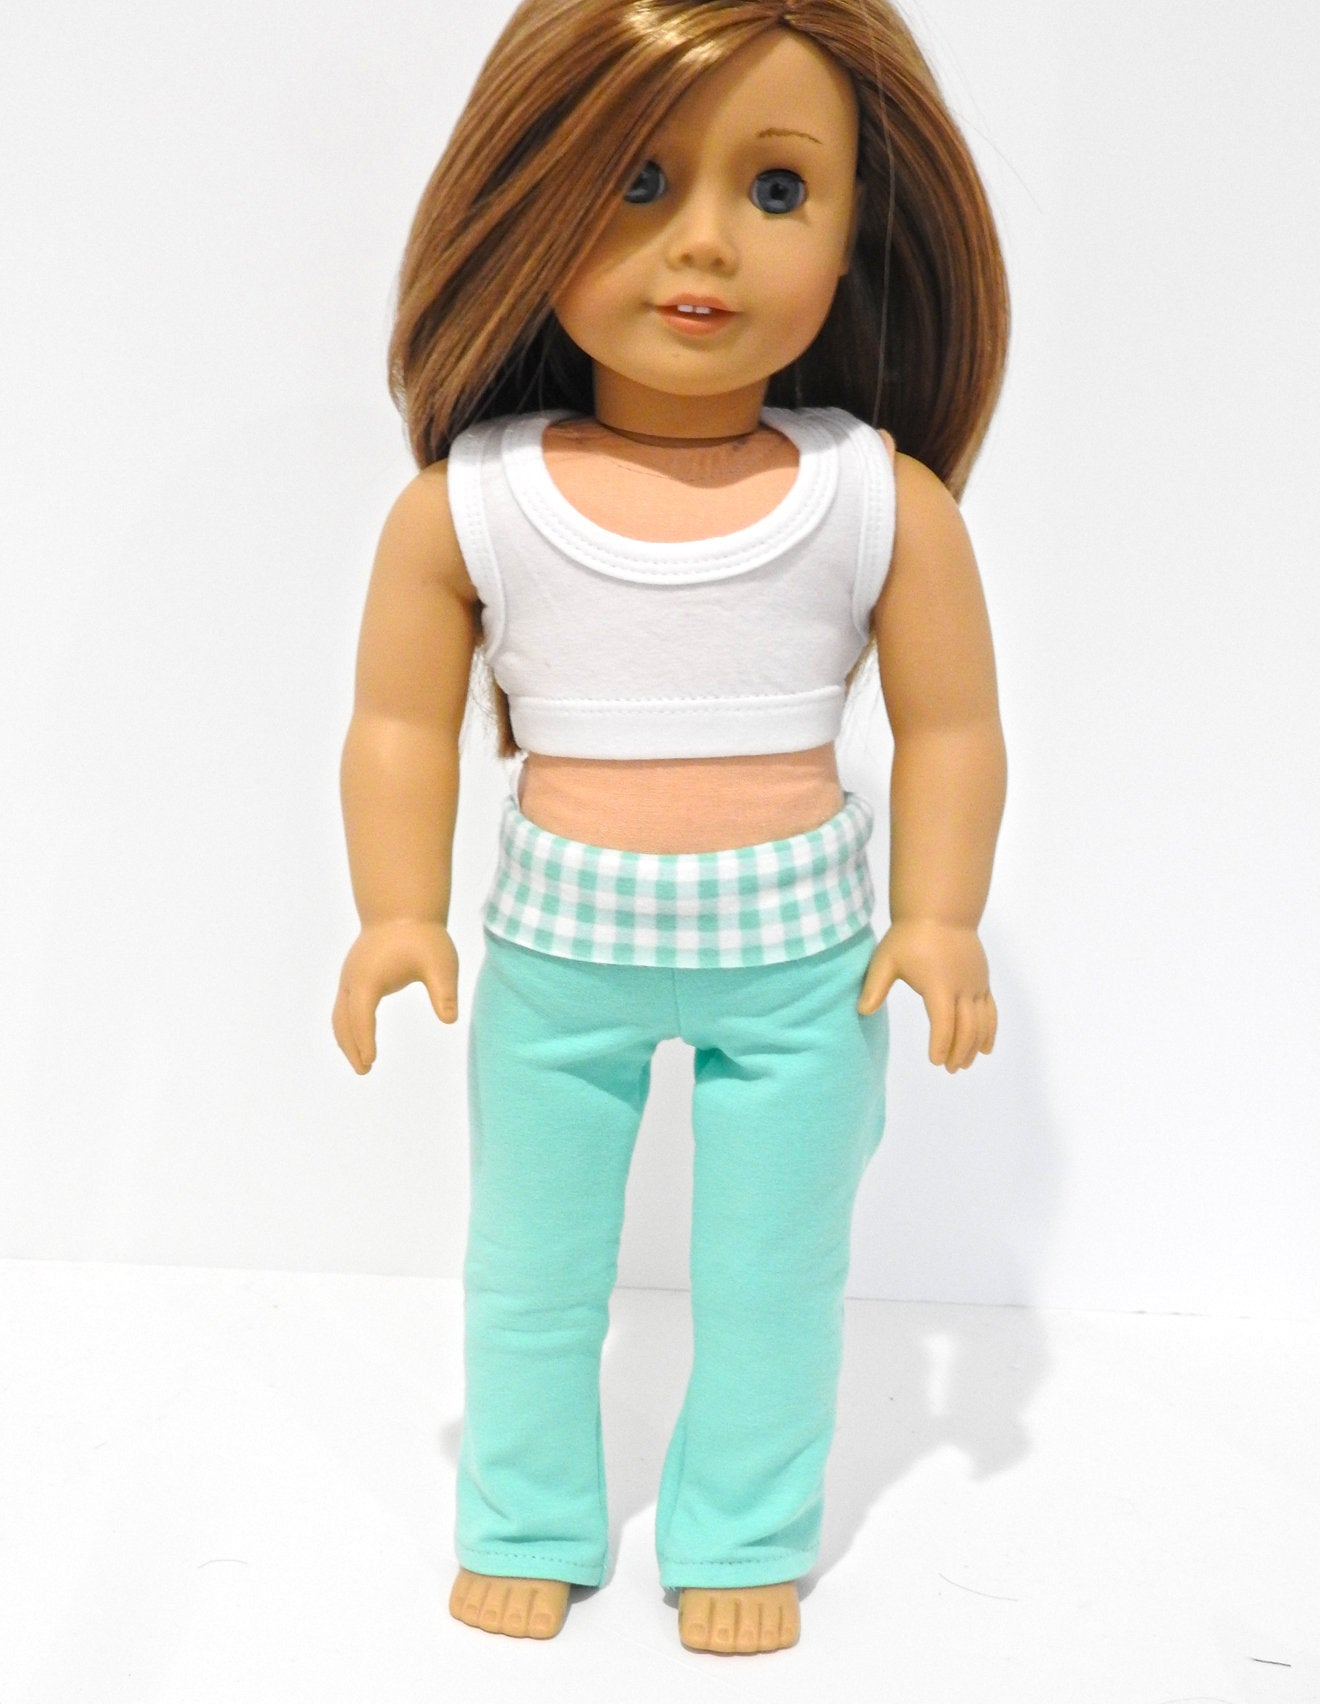 American girl doll yoga pants